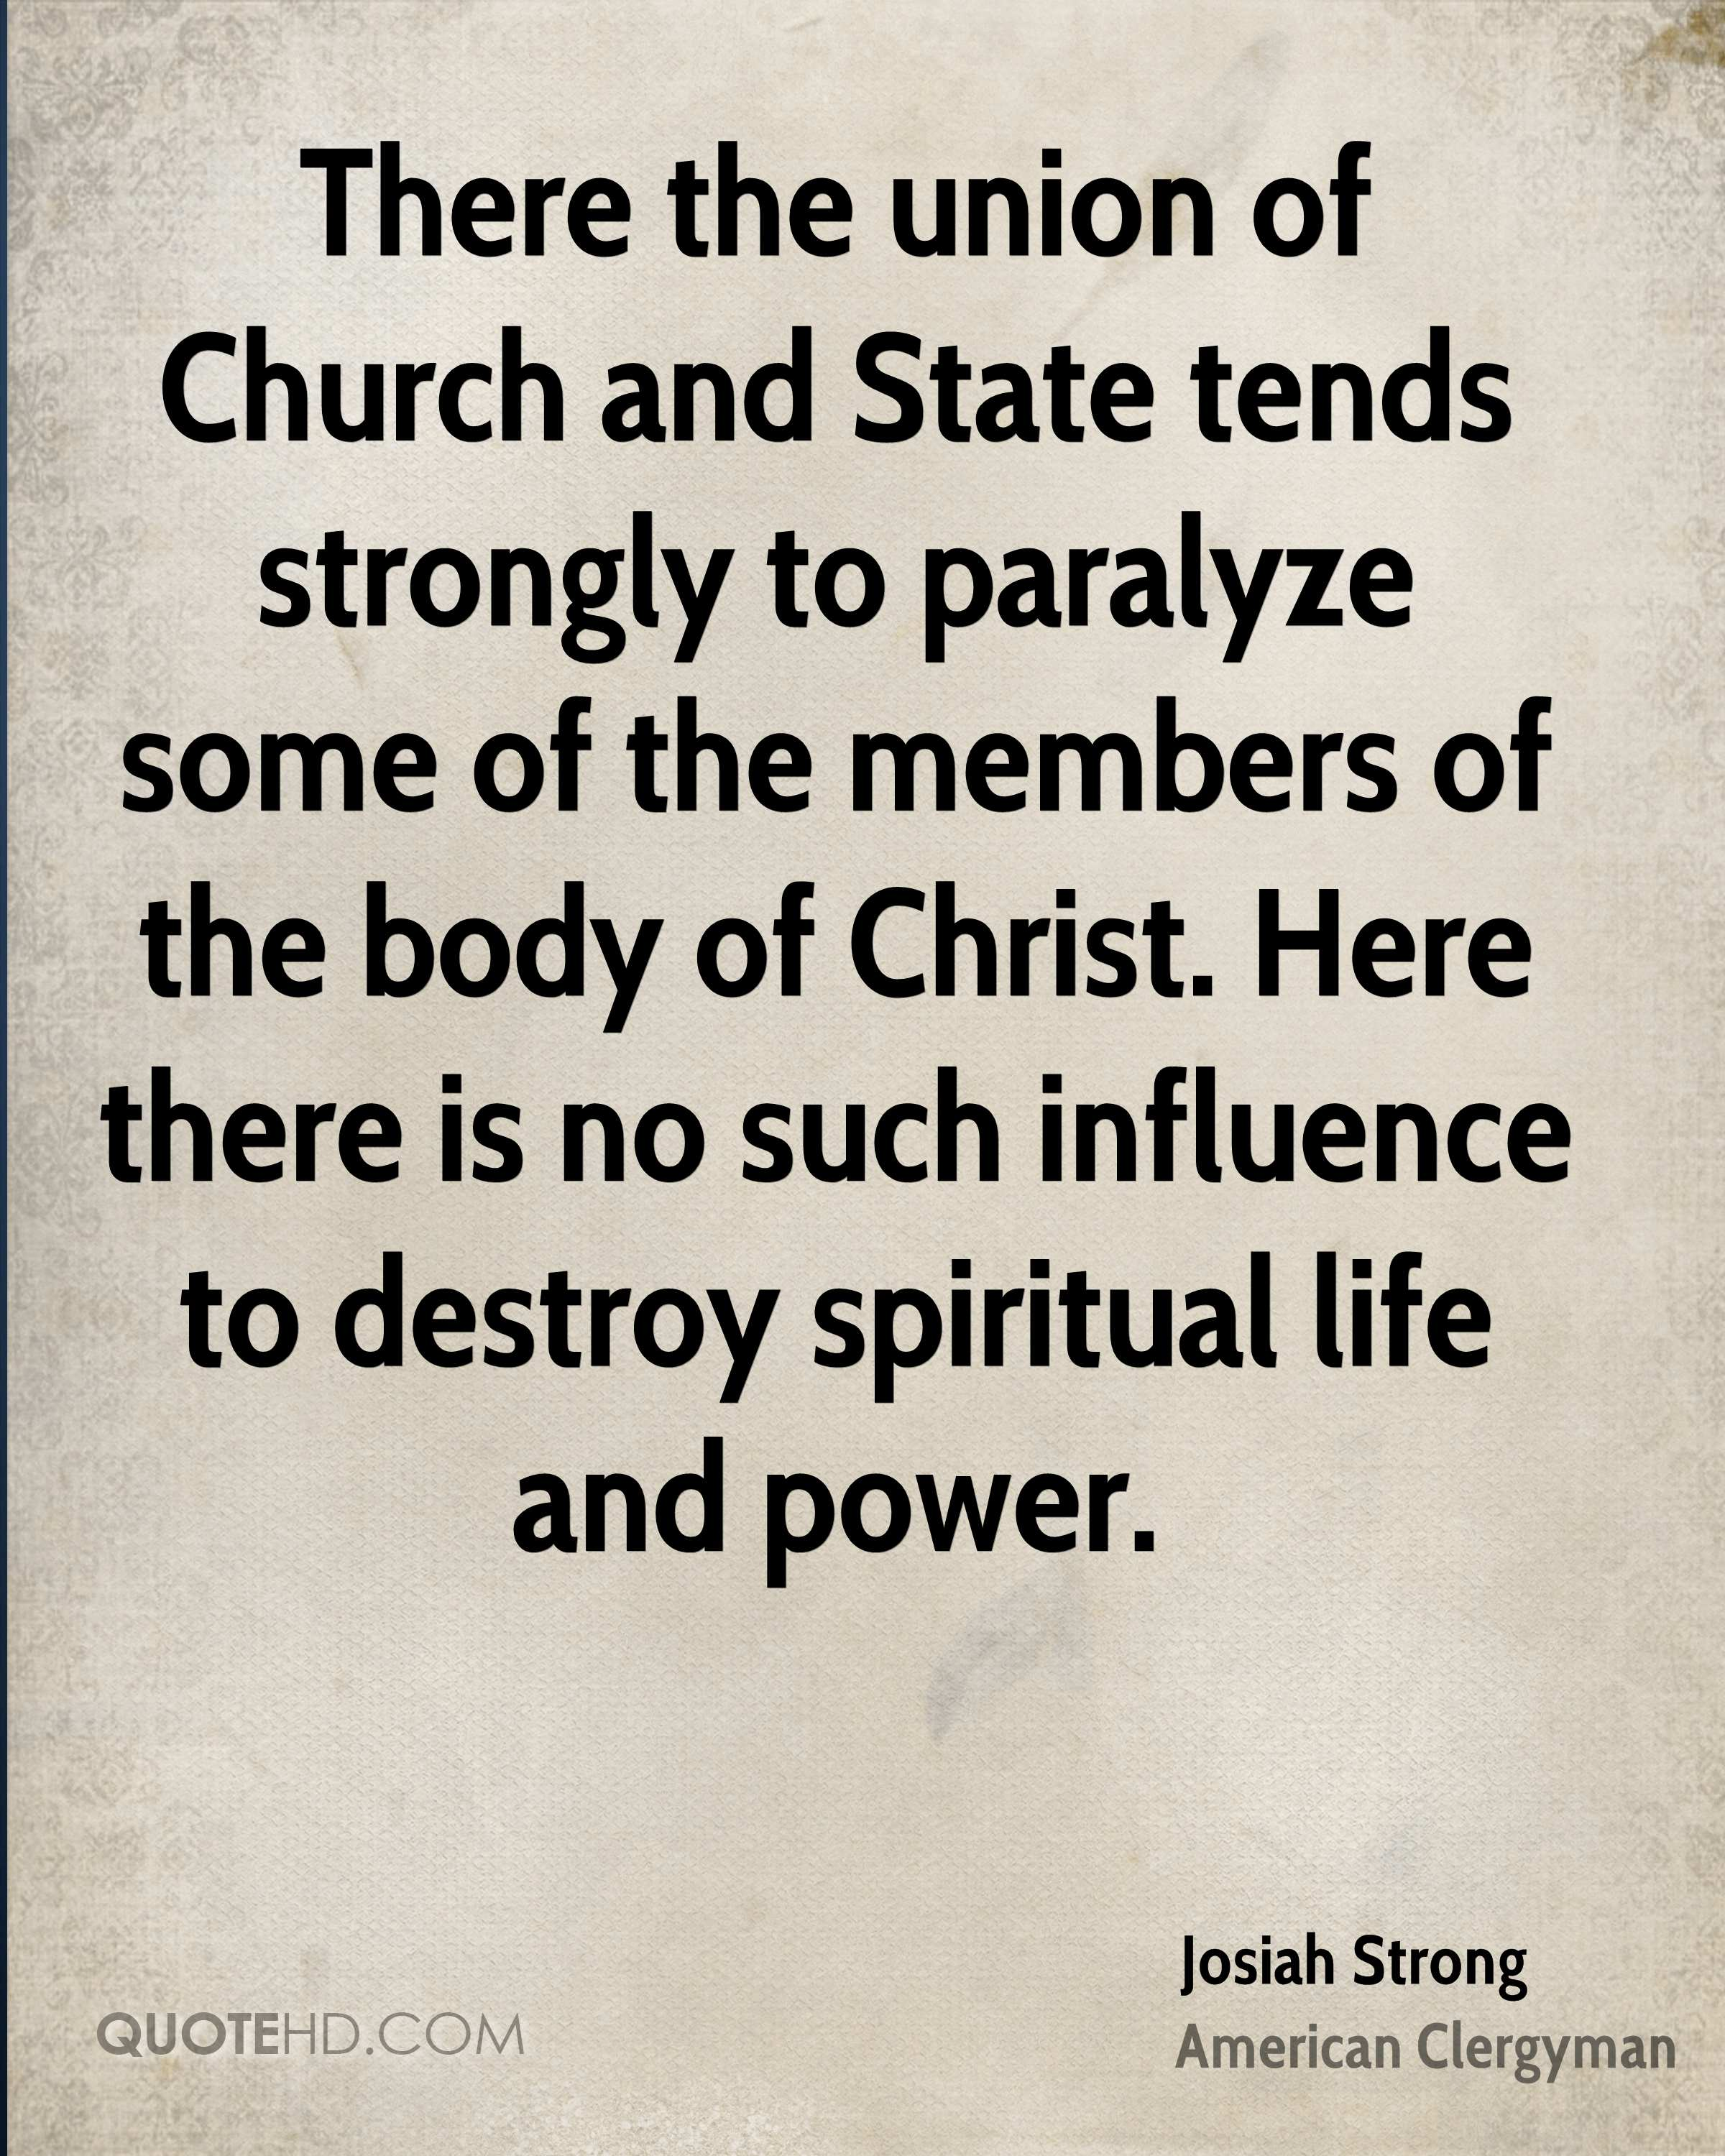 There the union of Church and State tends strongly to paralyze some of the members of the body of Christ. Here there is no such influence to destroy spiritual life and power.